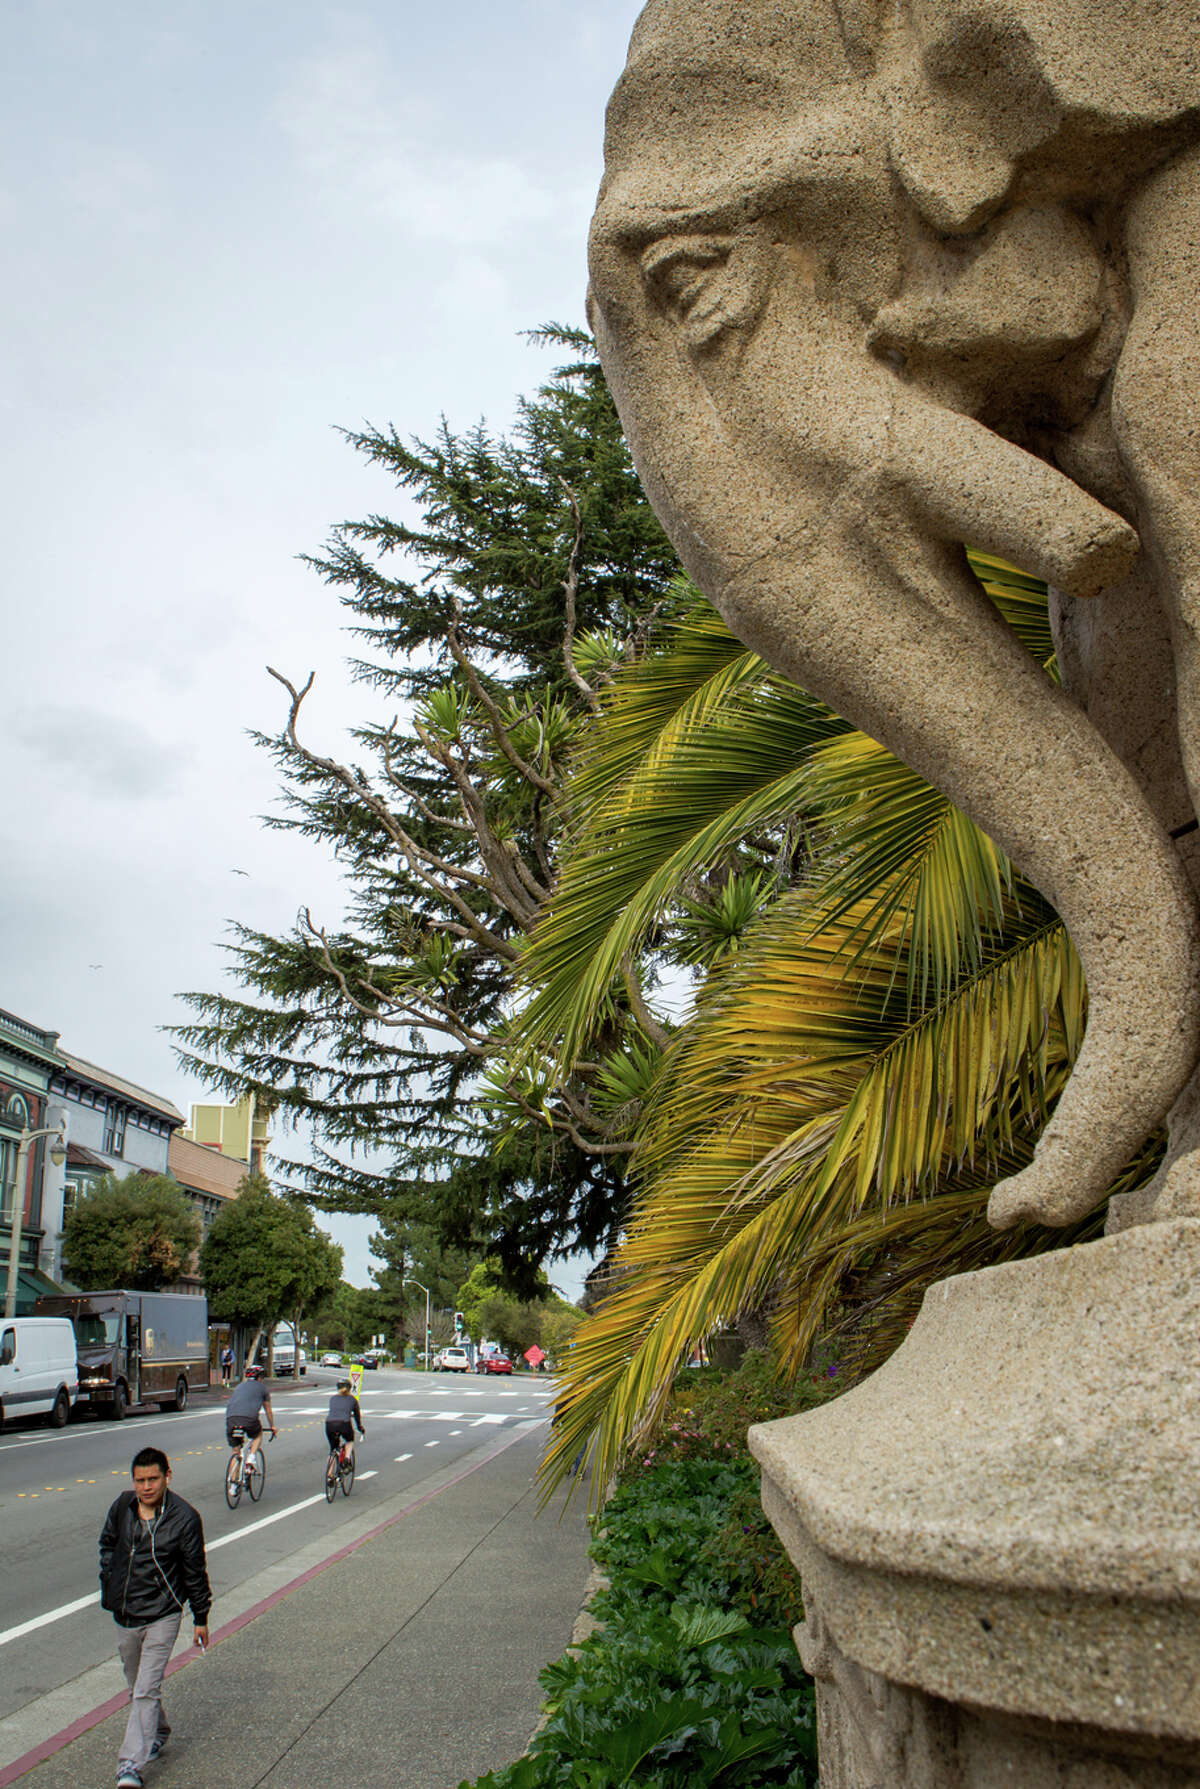 Honorio Perez passes the exposition's elephant light standards, which are now at Viña del Mar park in Sausalito.